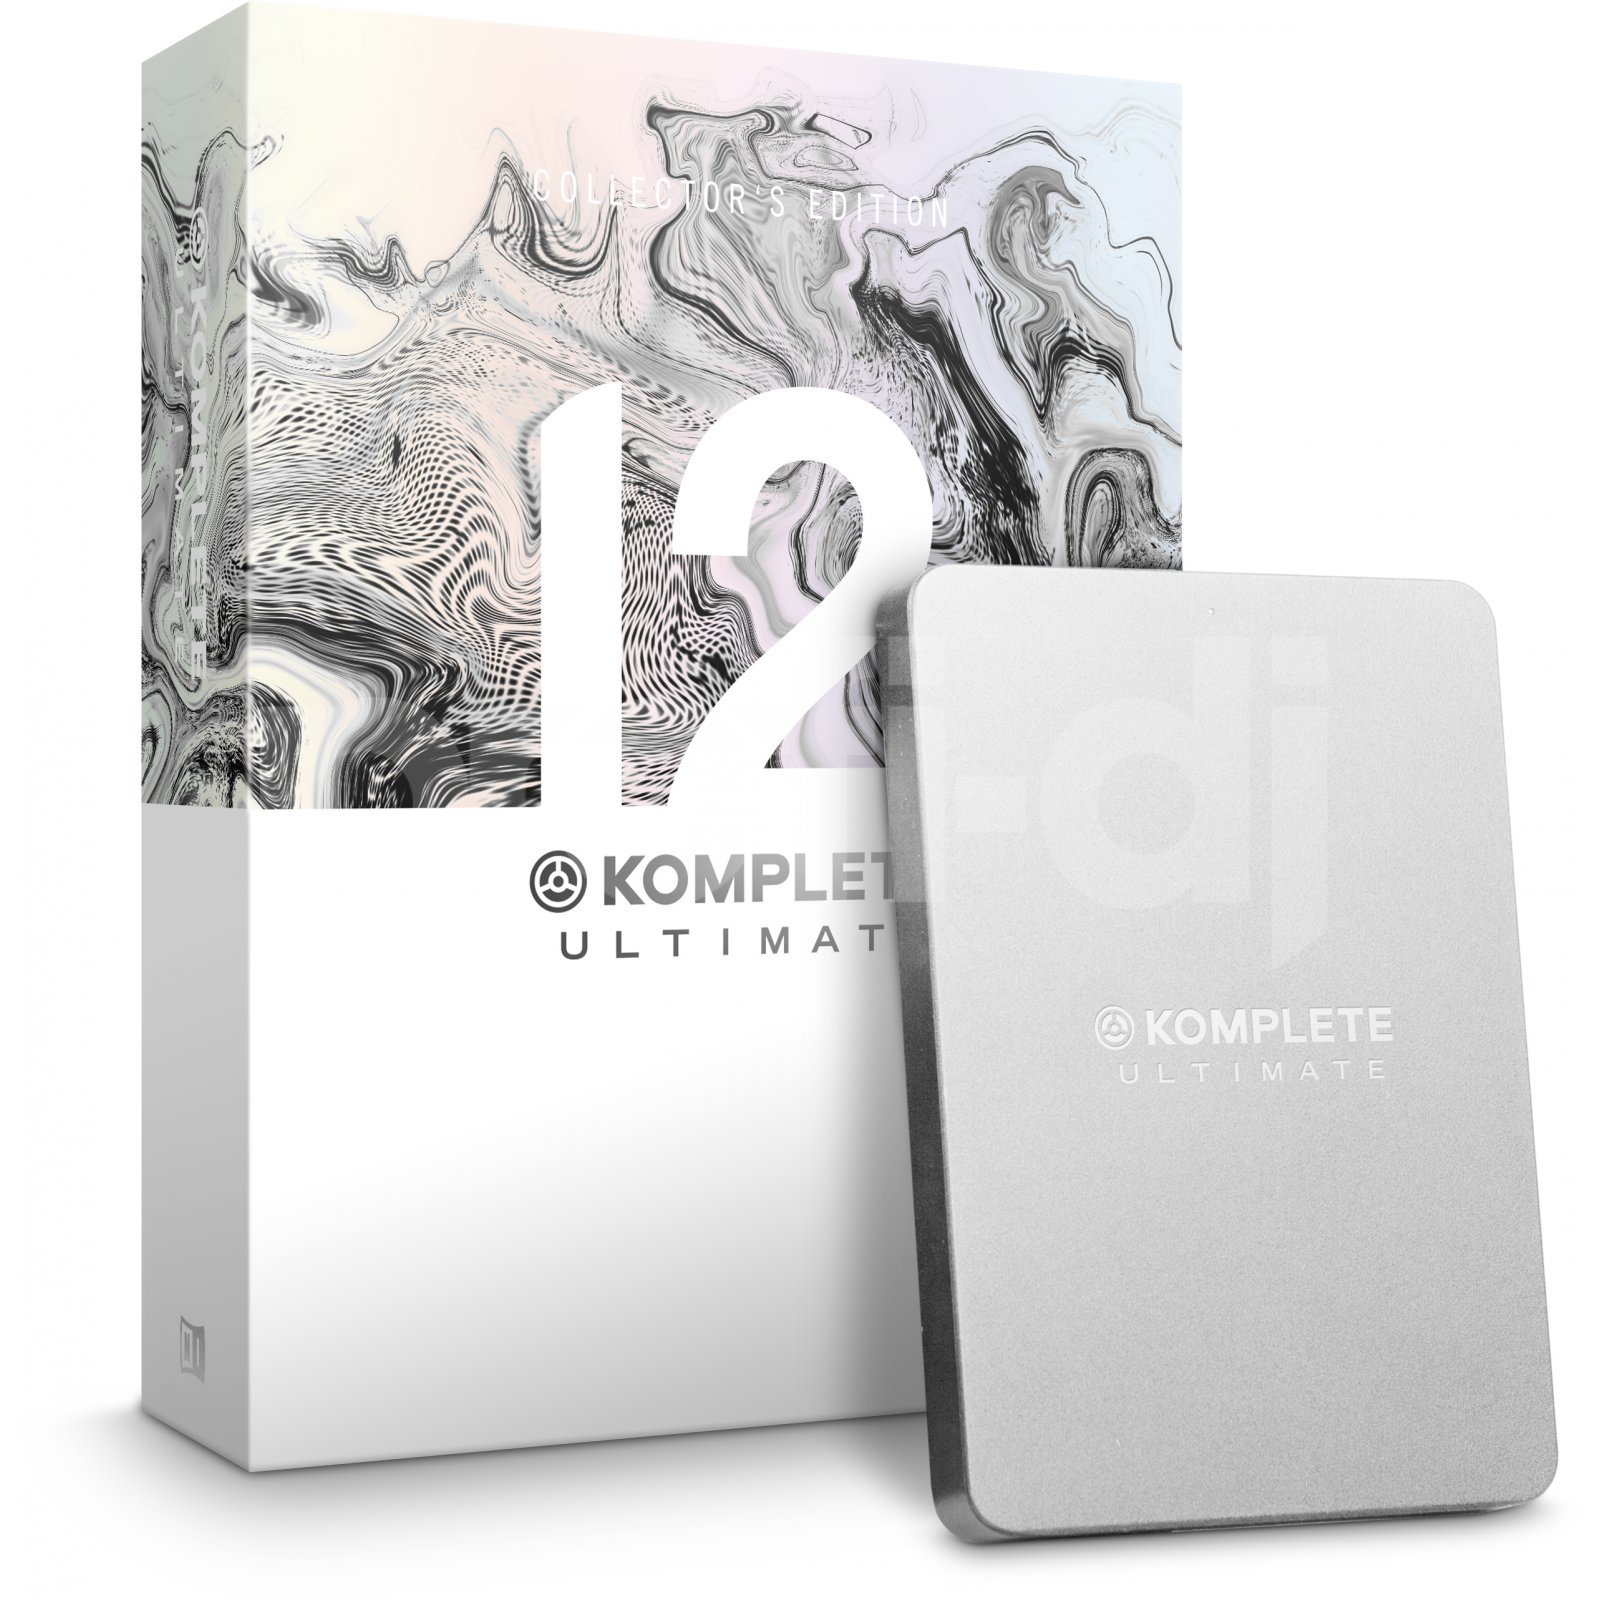 komplete 12 ultimate collectors edition worth it